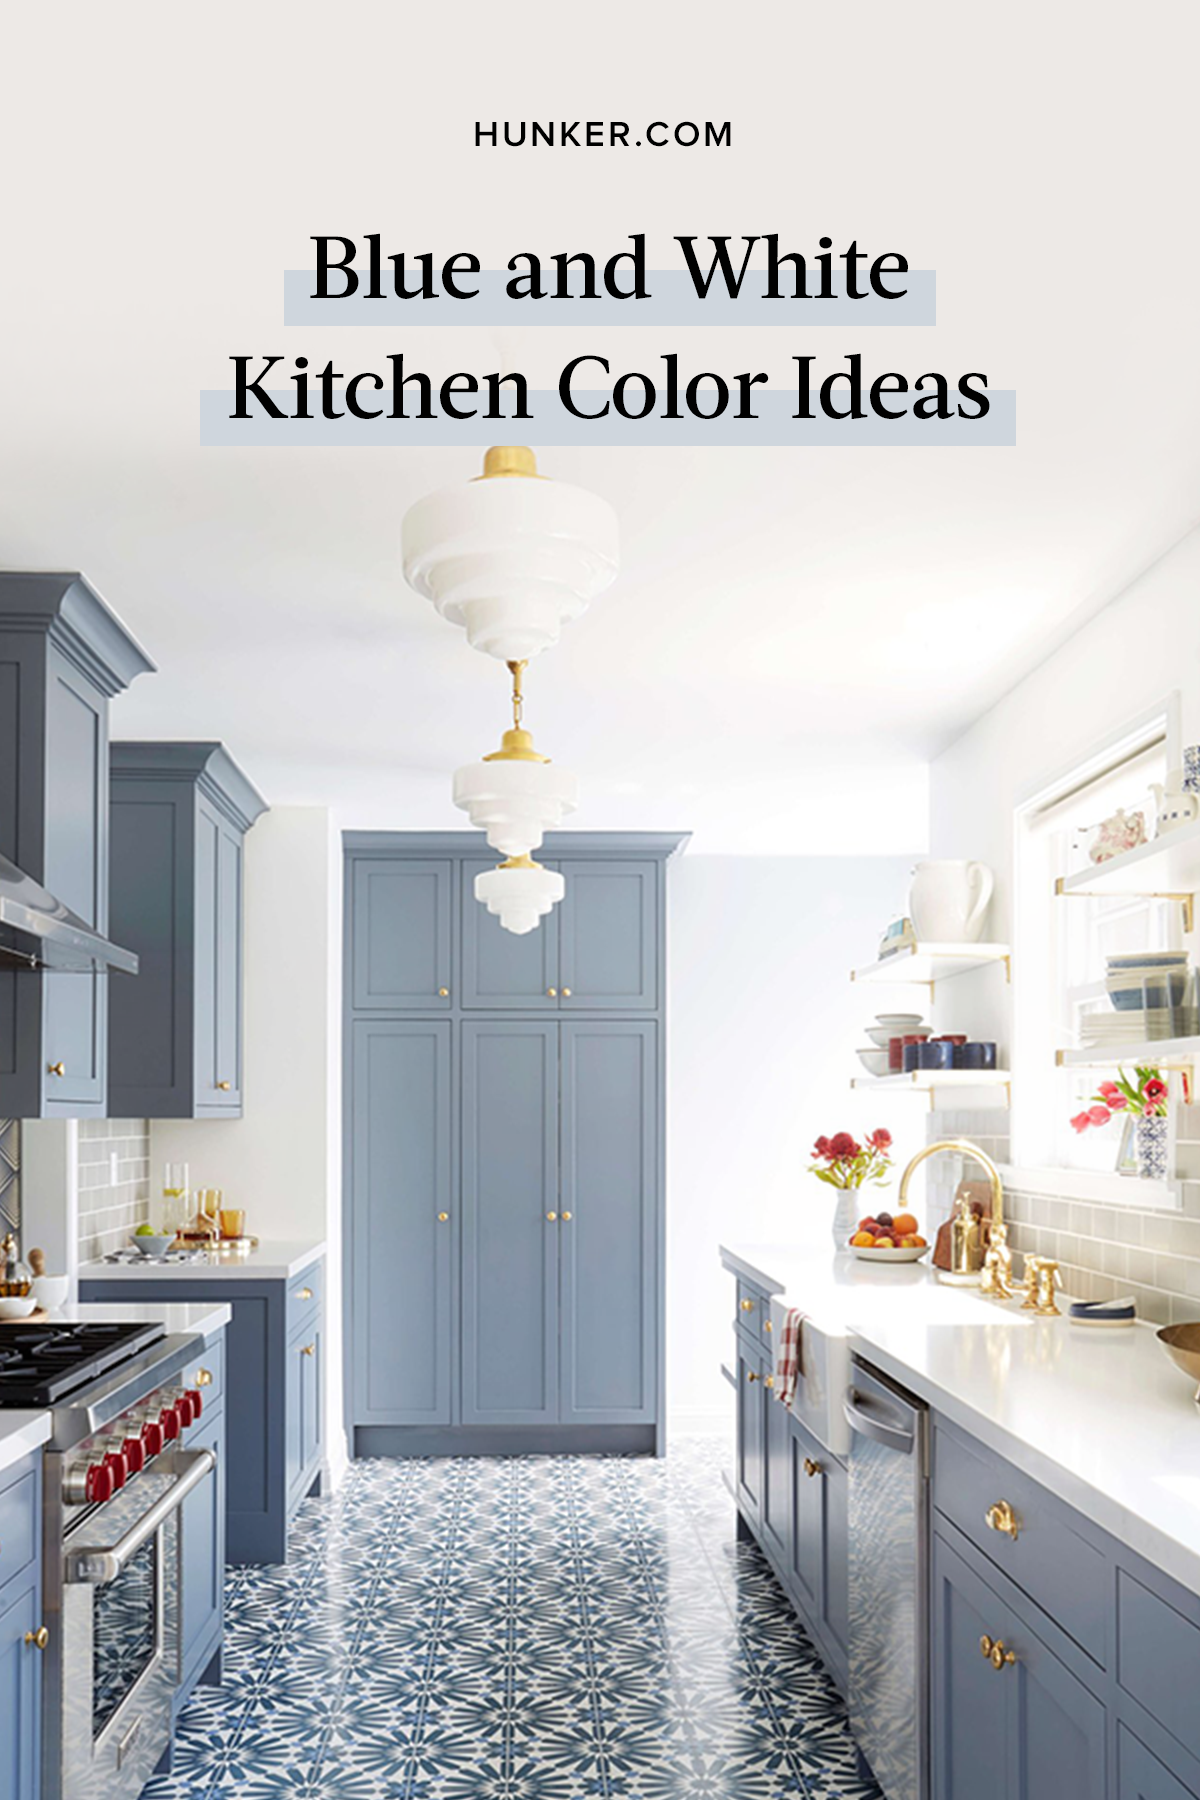 Hungry For Kitchen Color Ideas These Blue And White Spaces Are Guaranteed To Satisfy Hunker Kitchen Colors Blue Kitchen Walls Blue White Kitchens